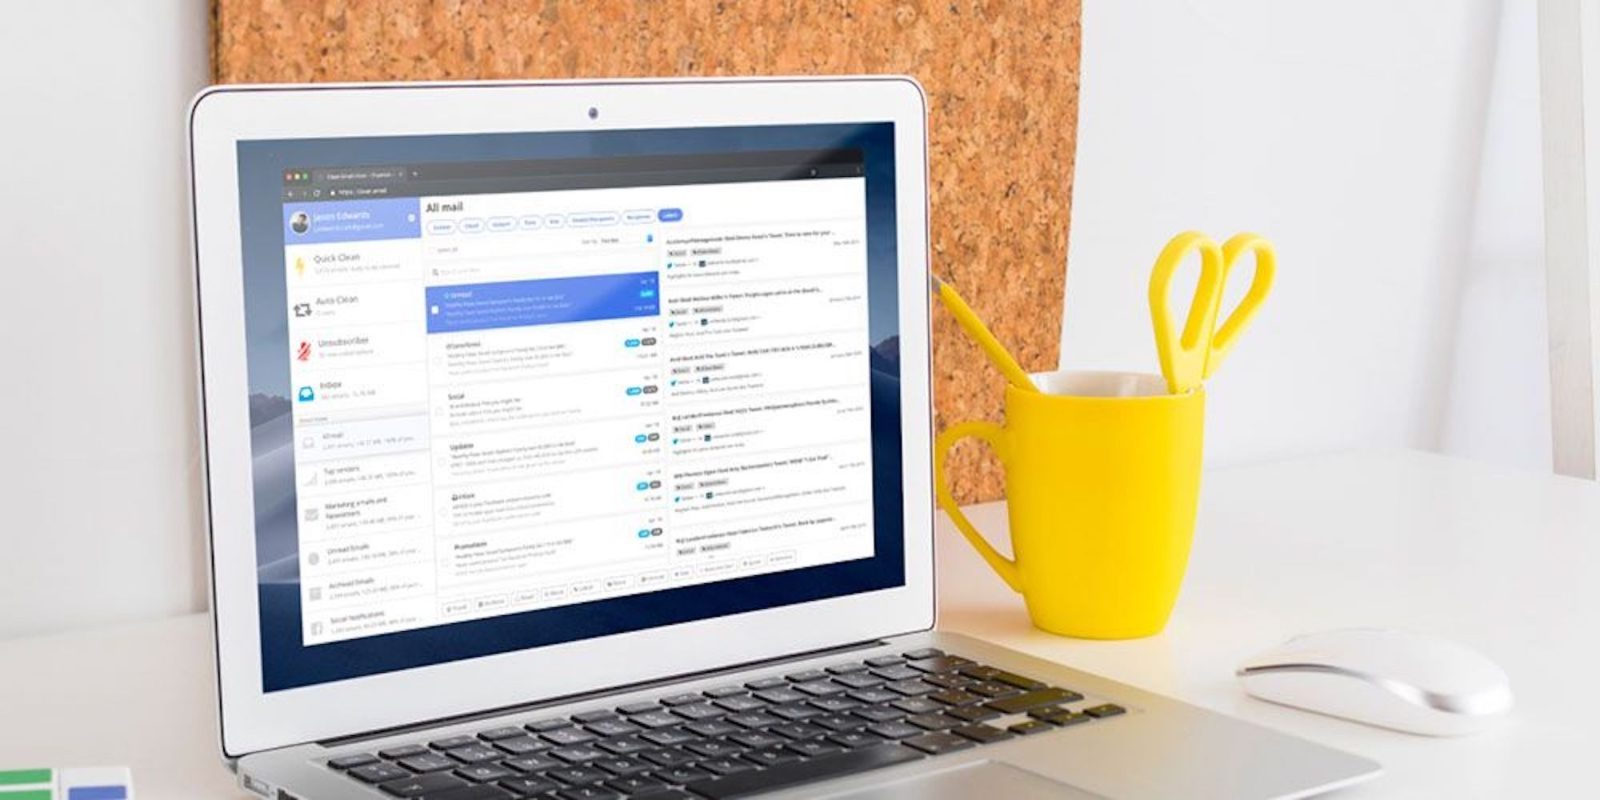 Keep your inbox tidy with Clean Email, starting at $10 (Orig. $96)